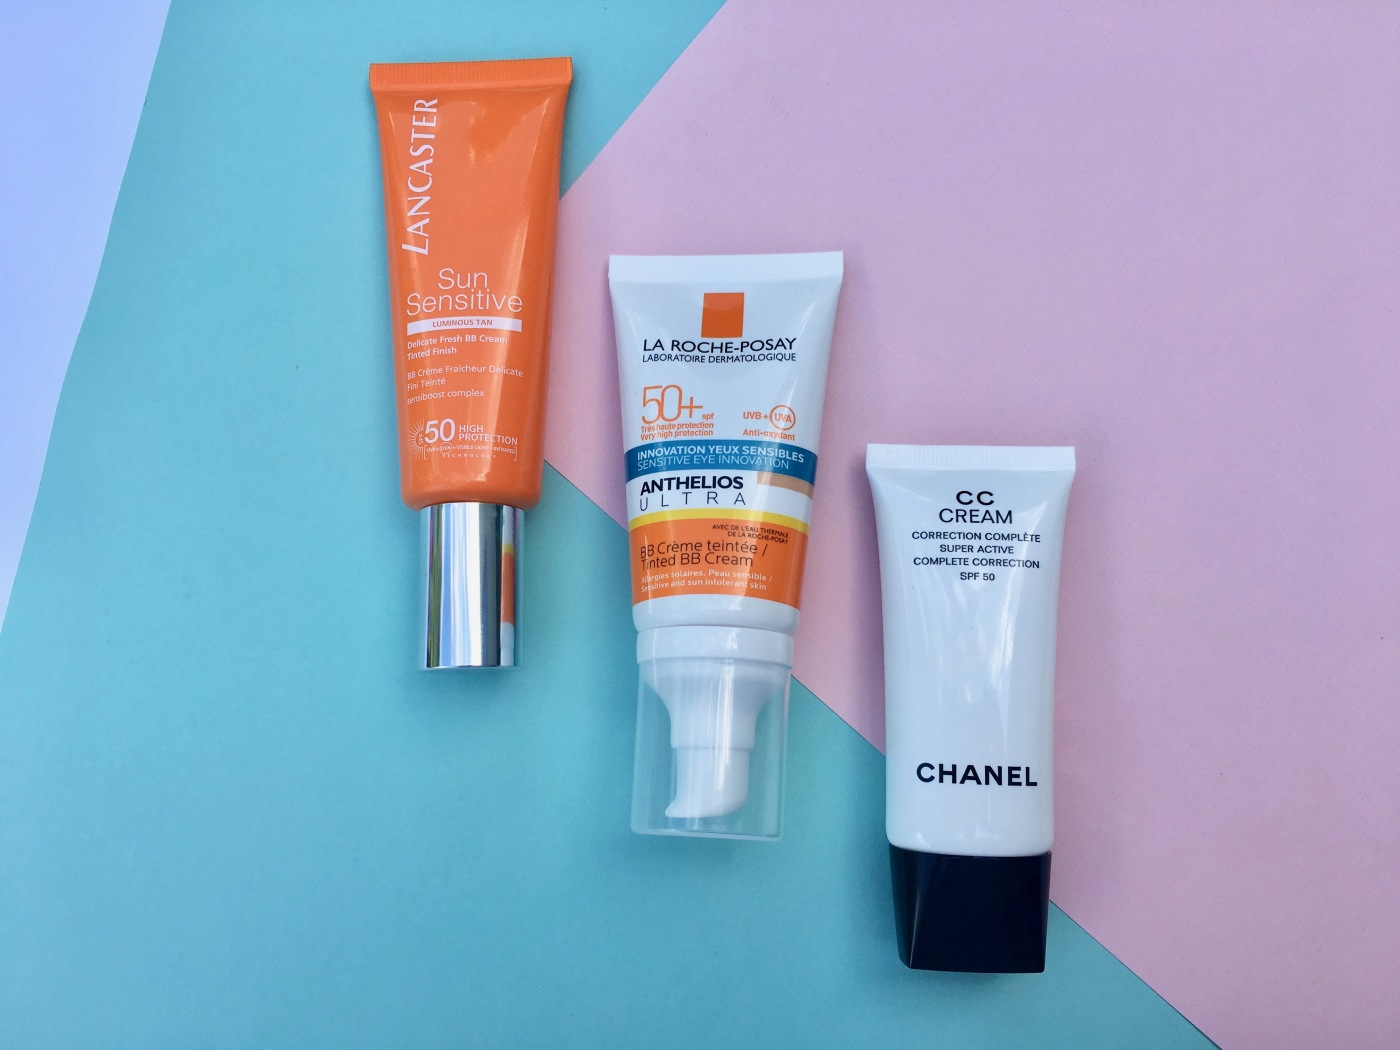 lancaster sun sensitive Anthelios Ultra La Roche-Posay CC Cream Chanel